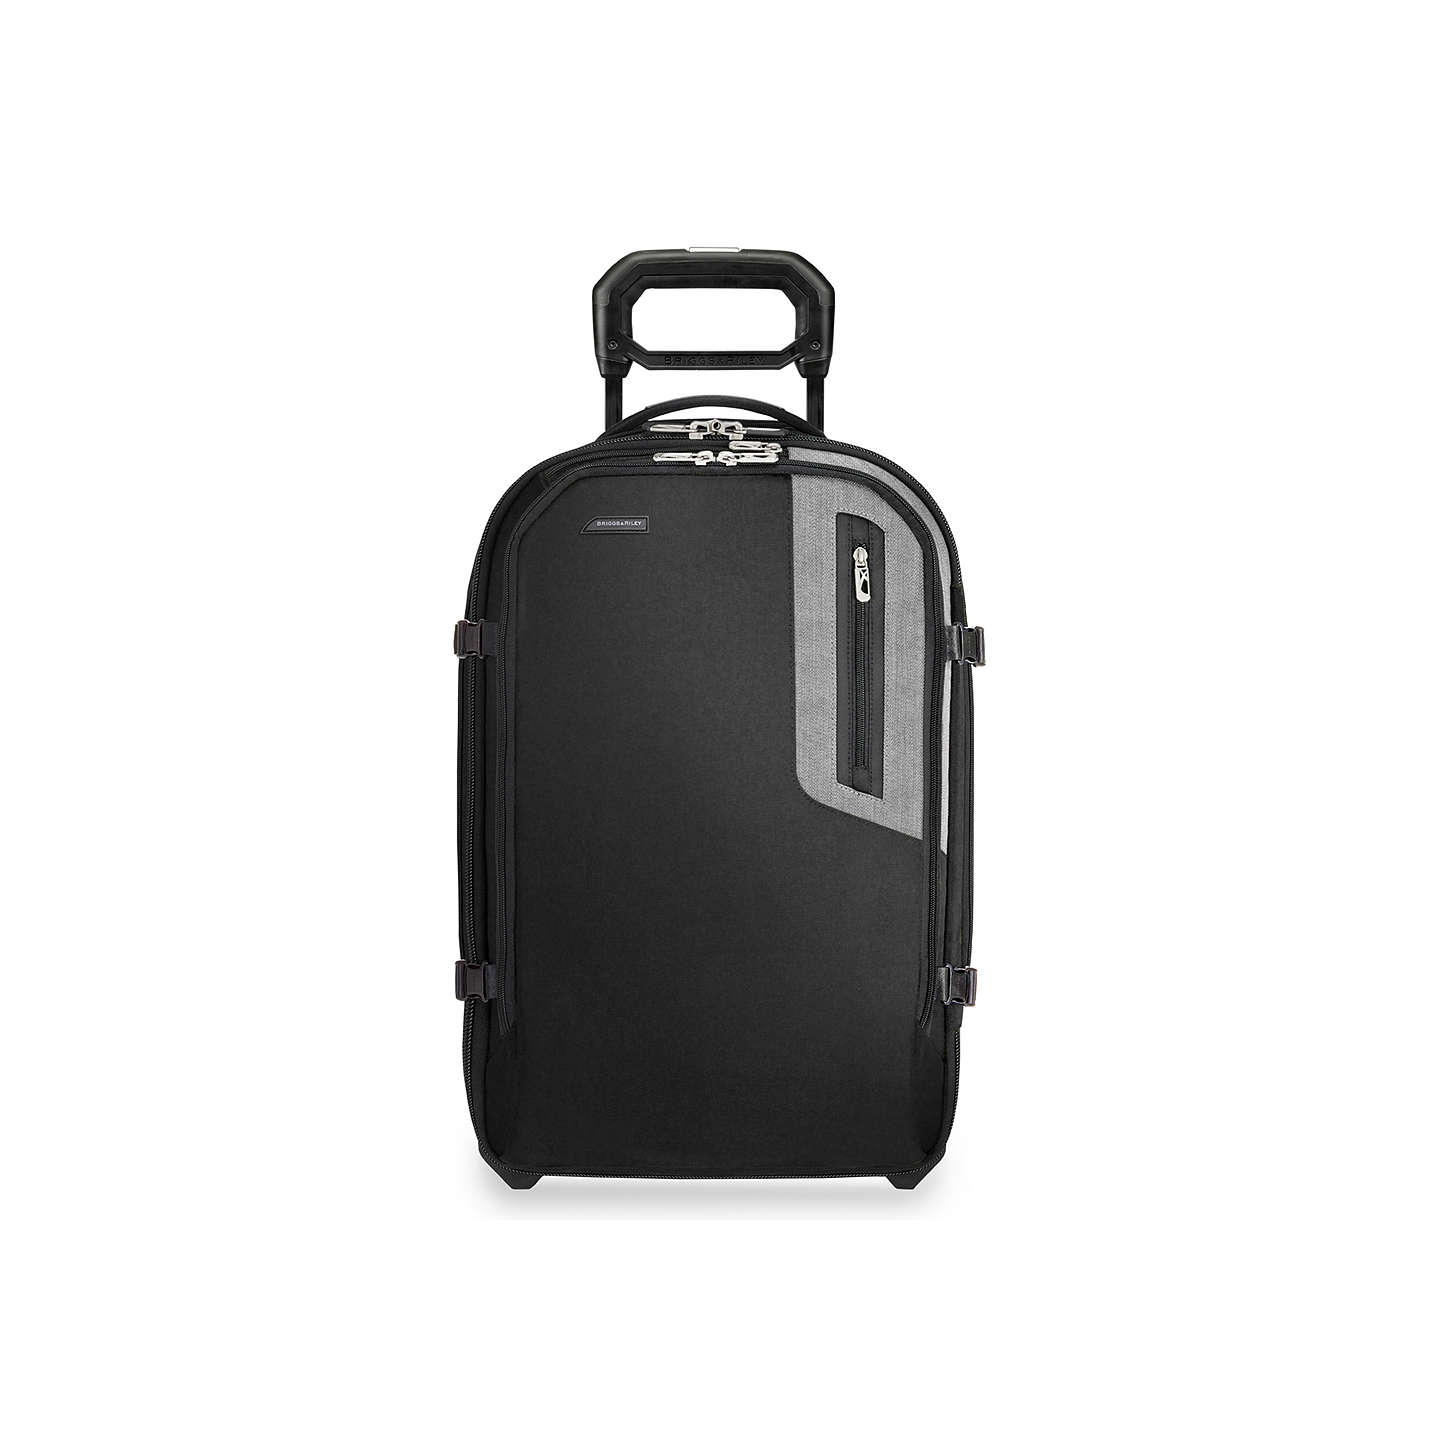 BuyBriggs & Riley BRX Explore Domestic 56cm Cabin Case, Black Online at johnlewis.com